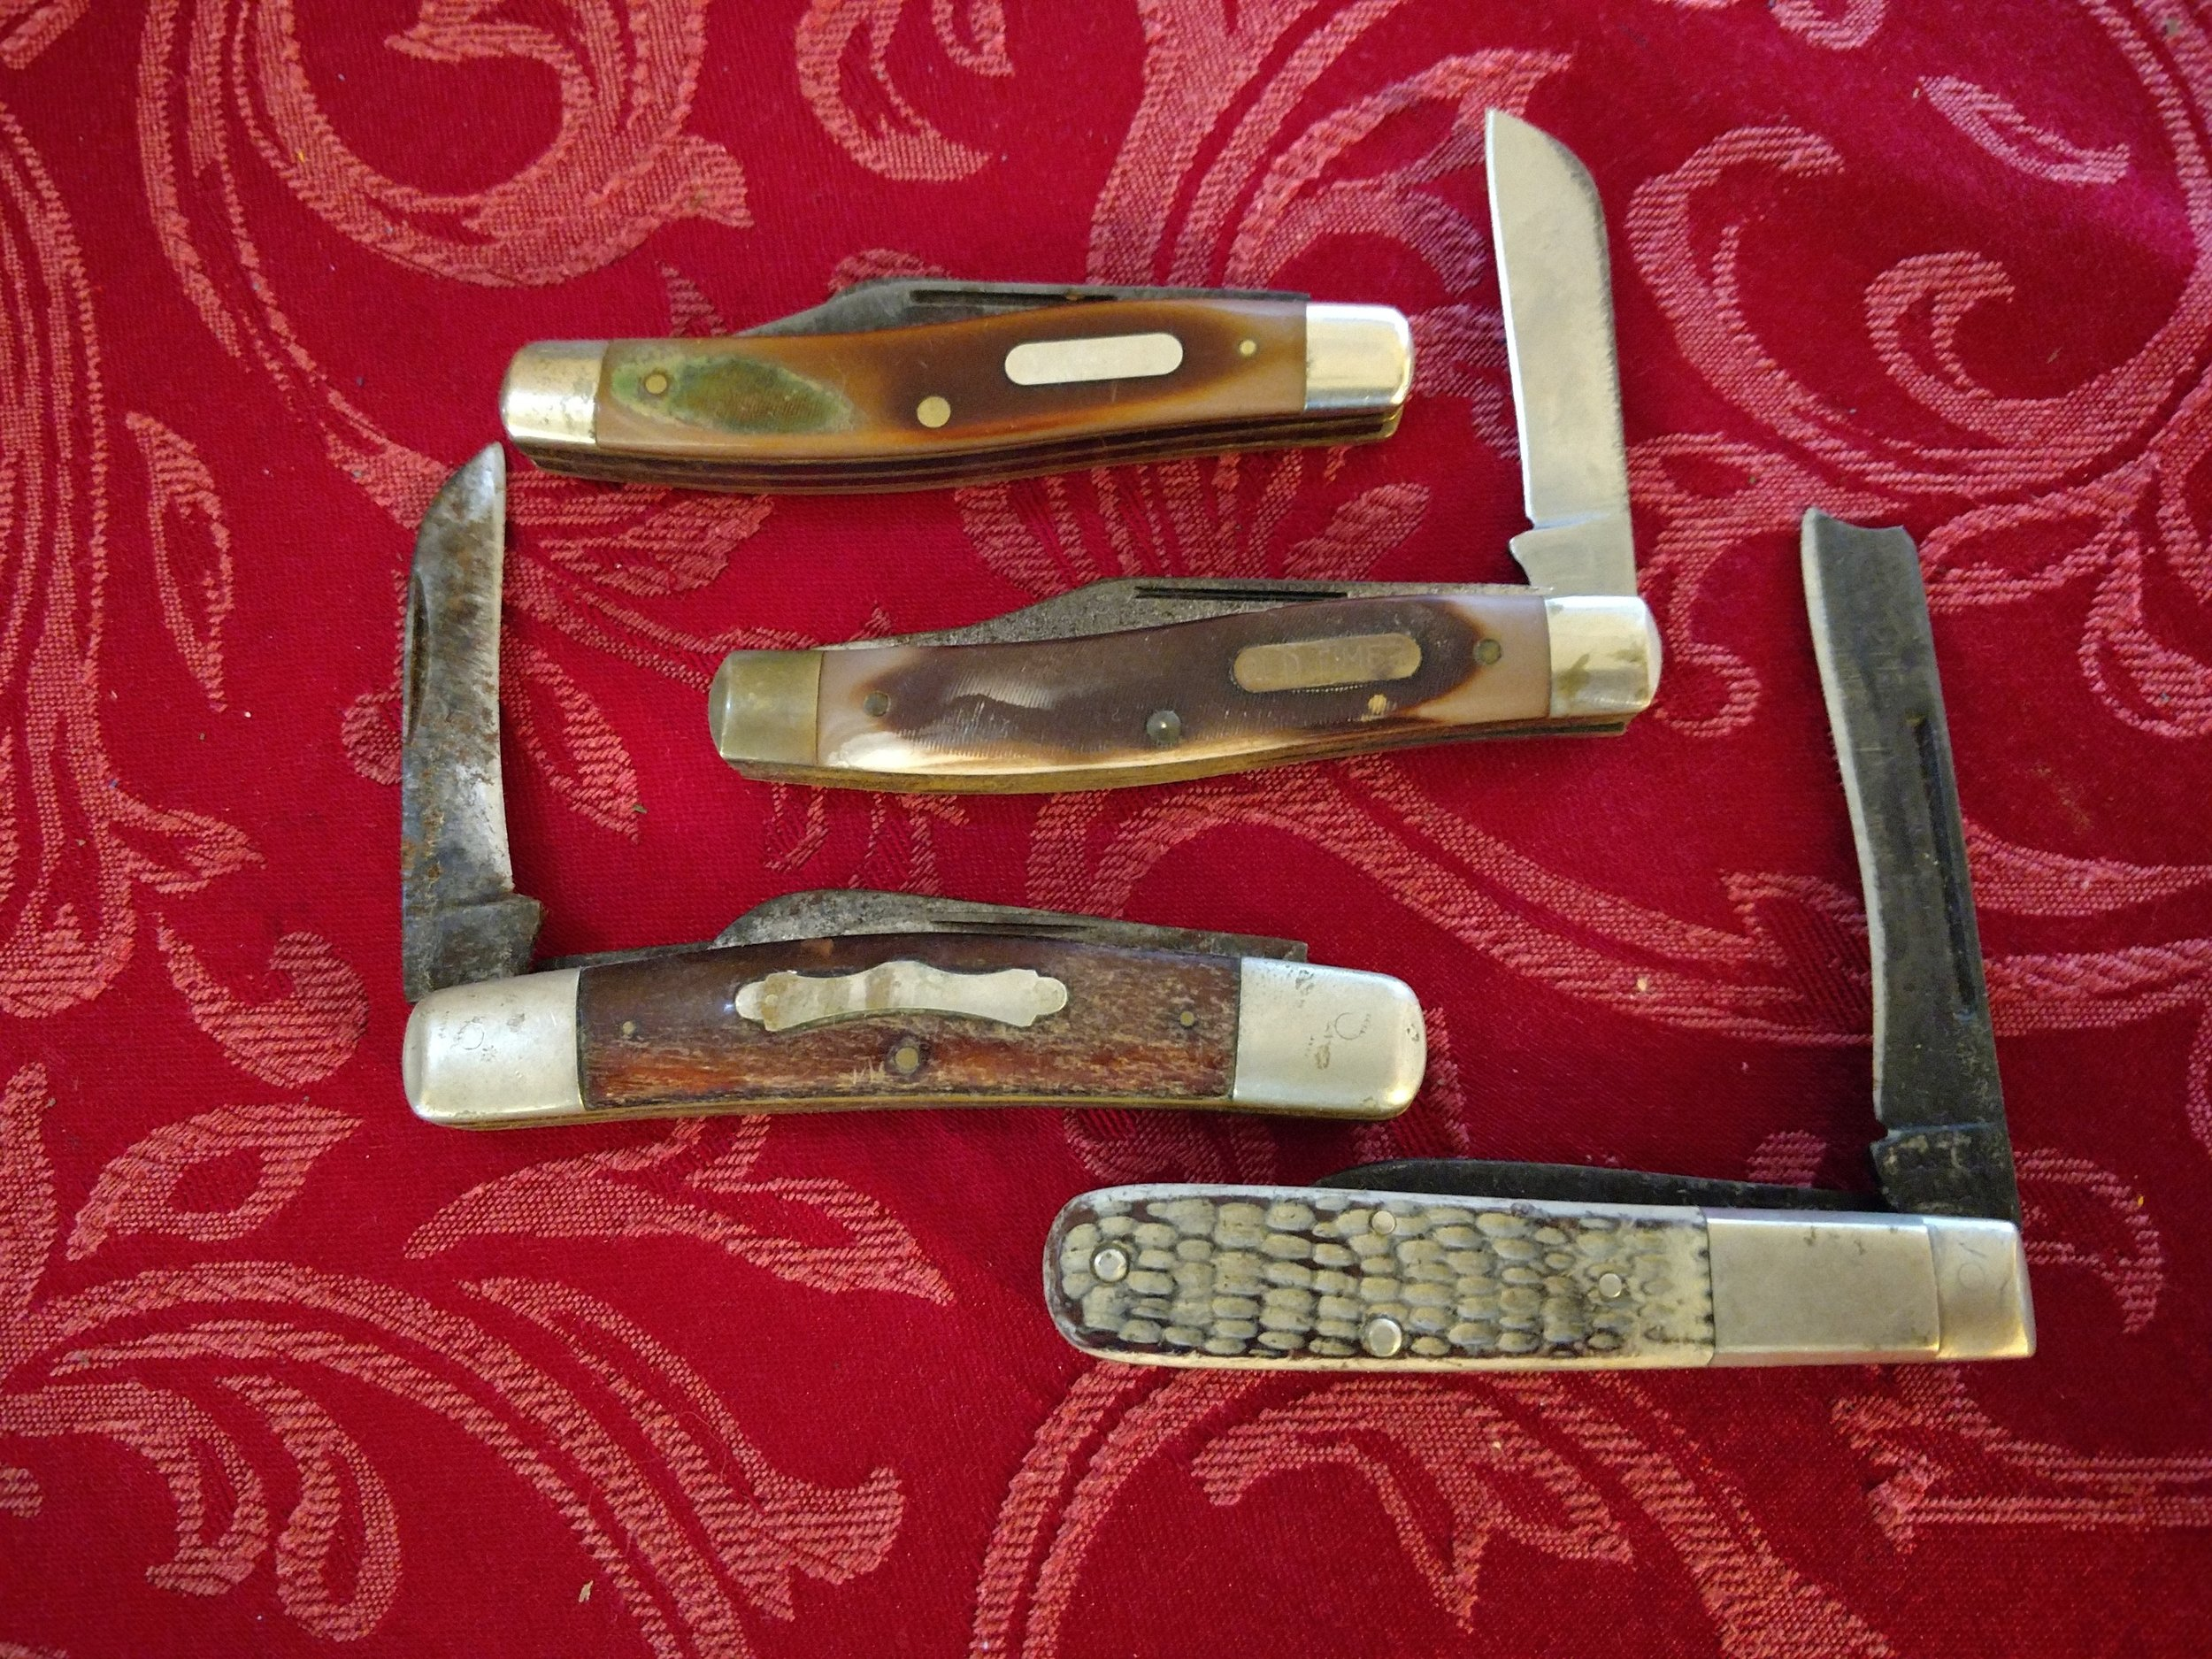 My knife collection - the top 2 belonged to my Grandfathers and the bottom 2 were my Great-Grandfathers'